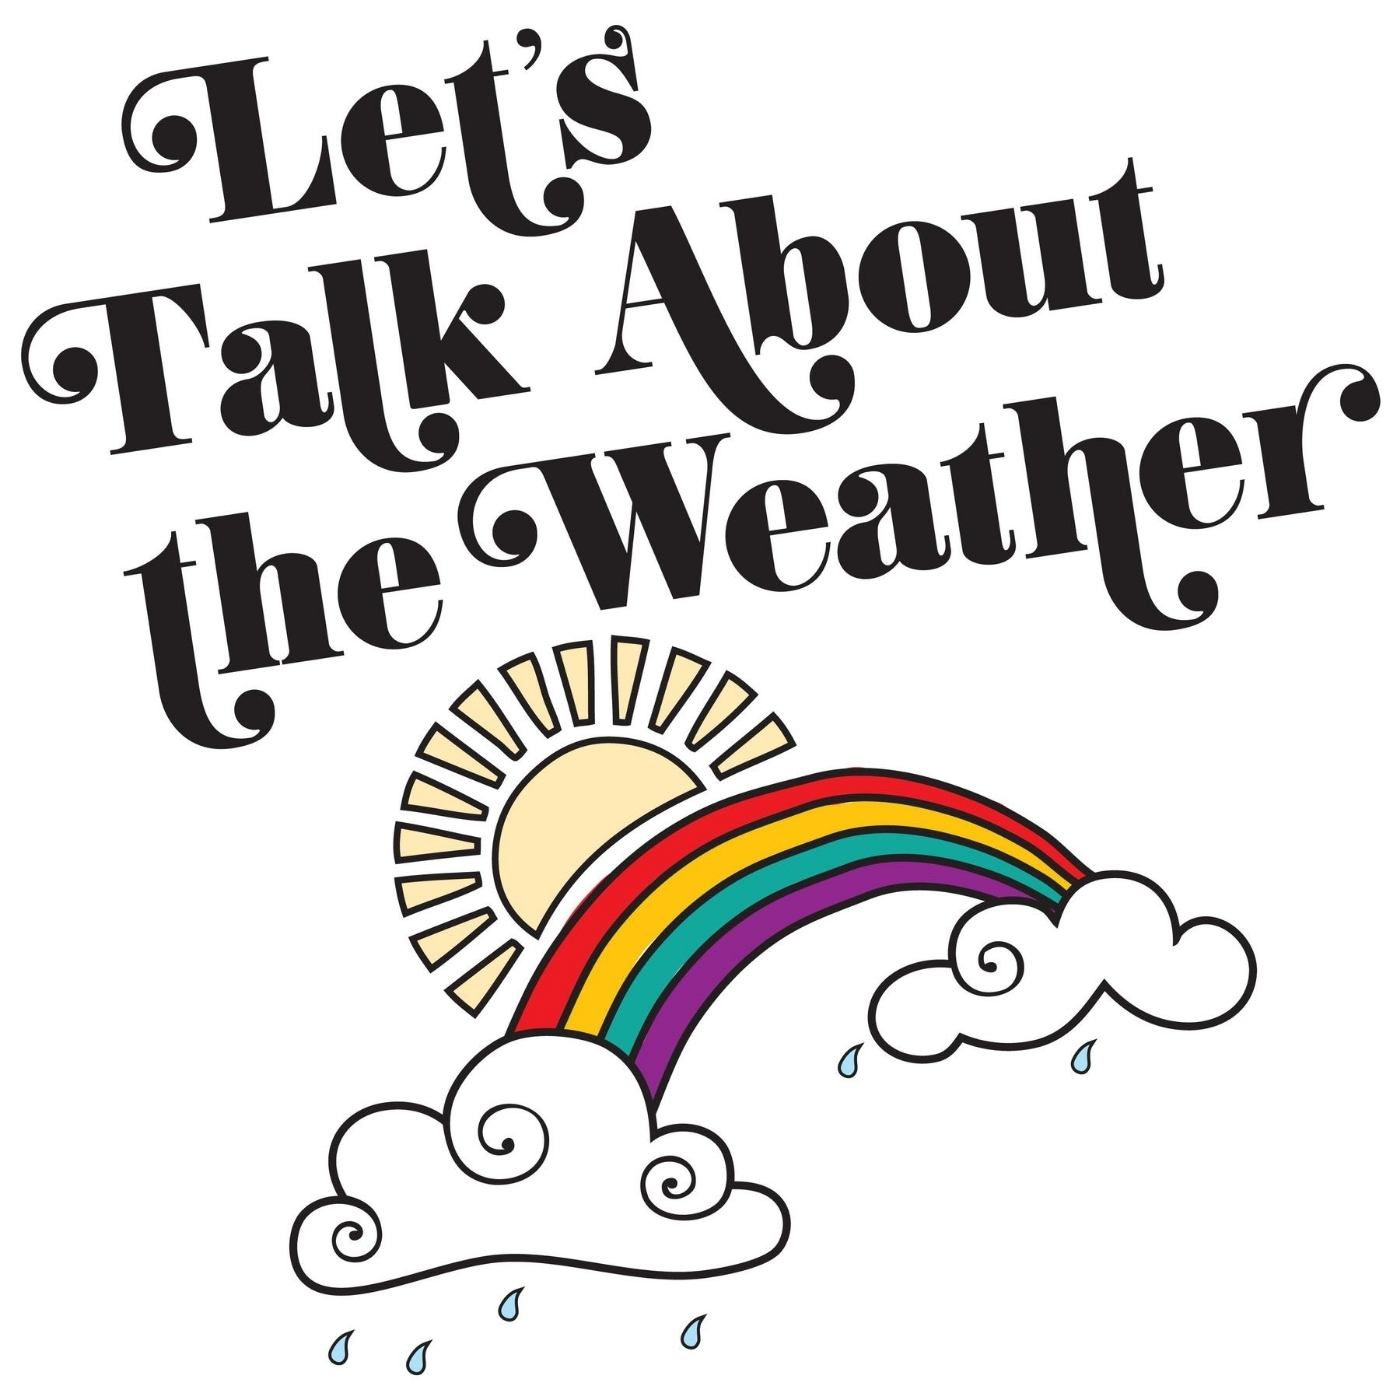 Let's Talk About The Weather podcast explores creative approaches to global problems through ecoart, music, writing, and other media.